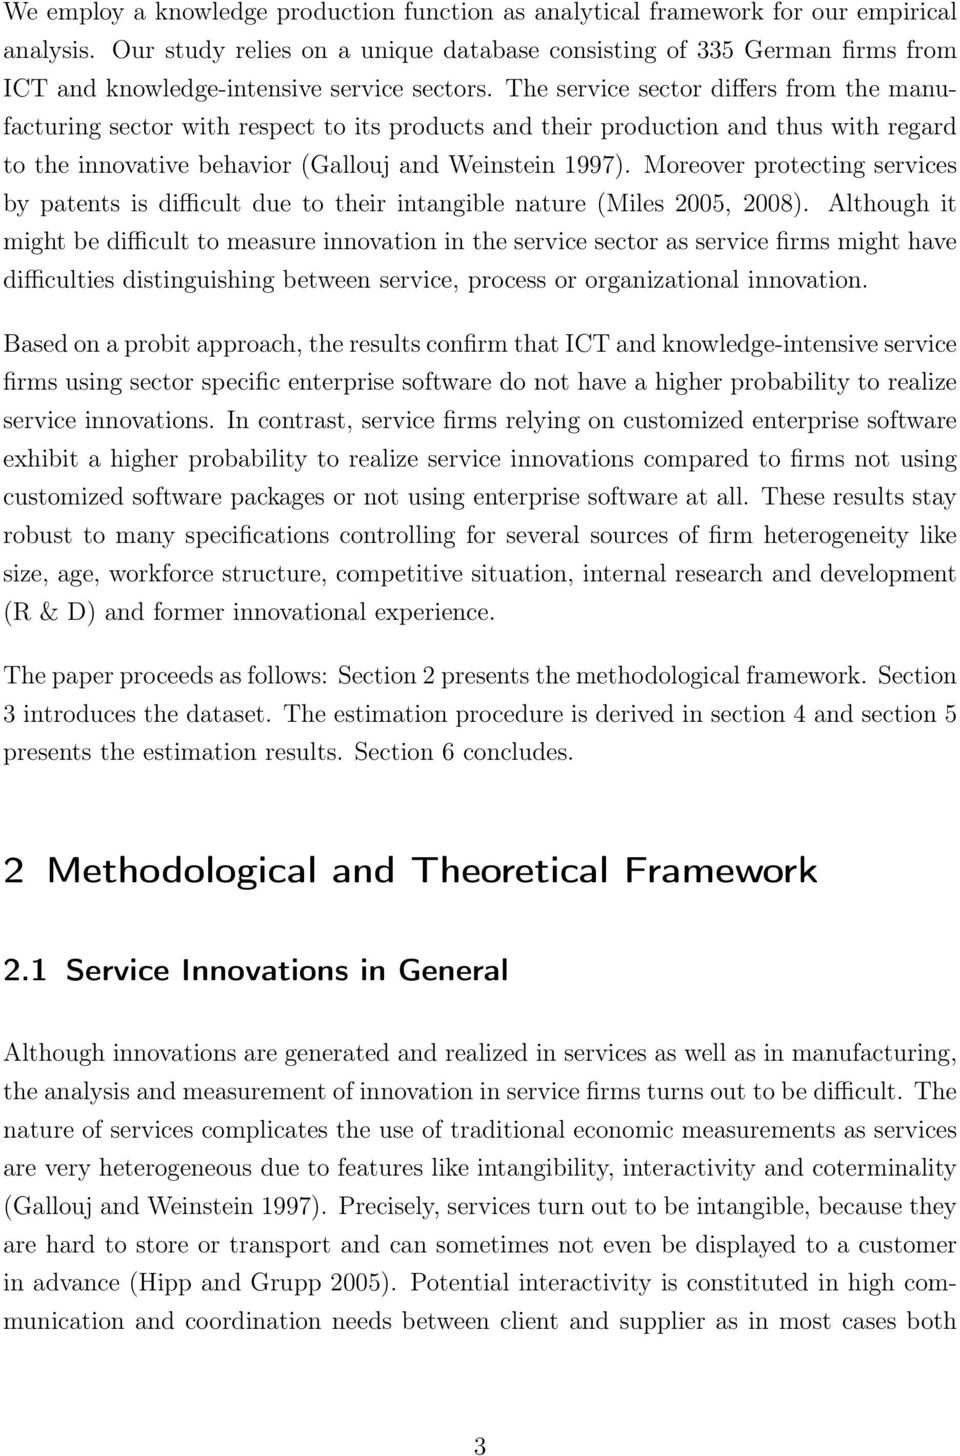 The service sector differs from the manufacturing sector with respect to its products and their production and thus with regard to the innovative behavior (Gallouj and Weinstein 1997).